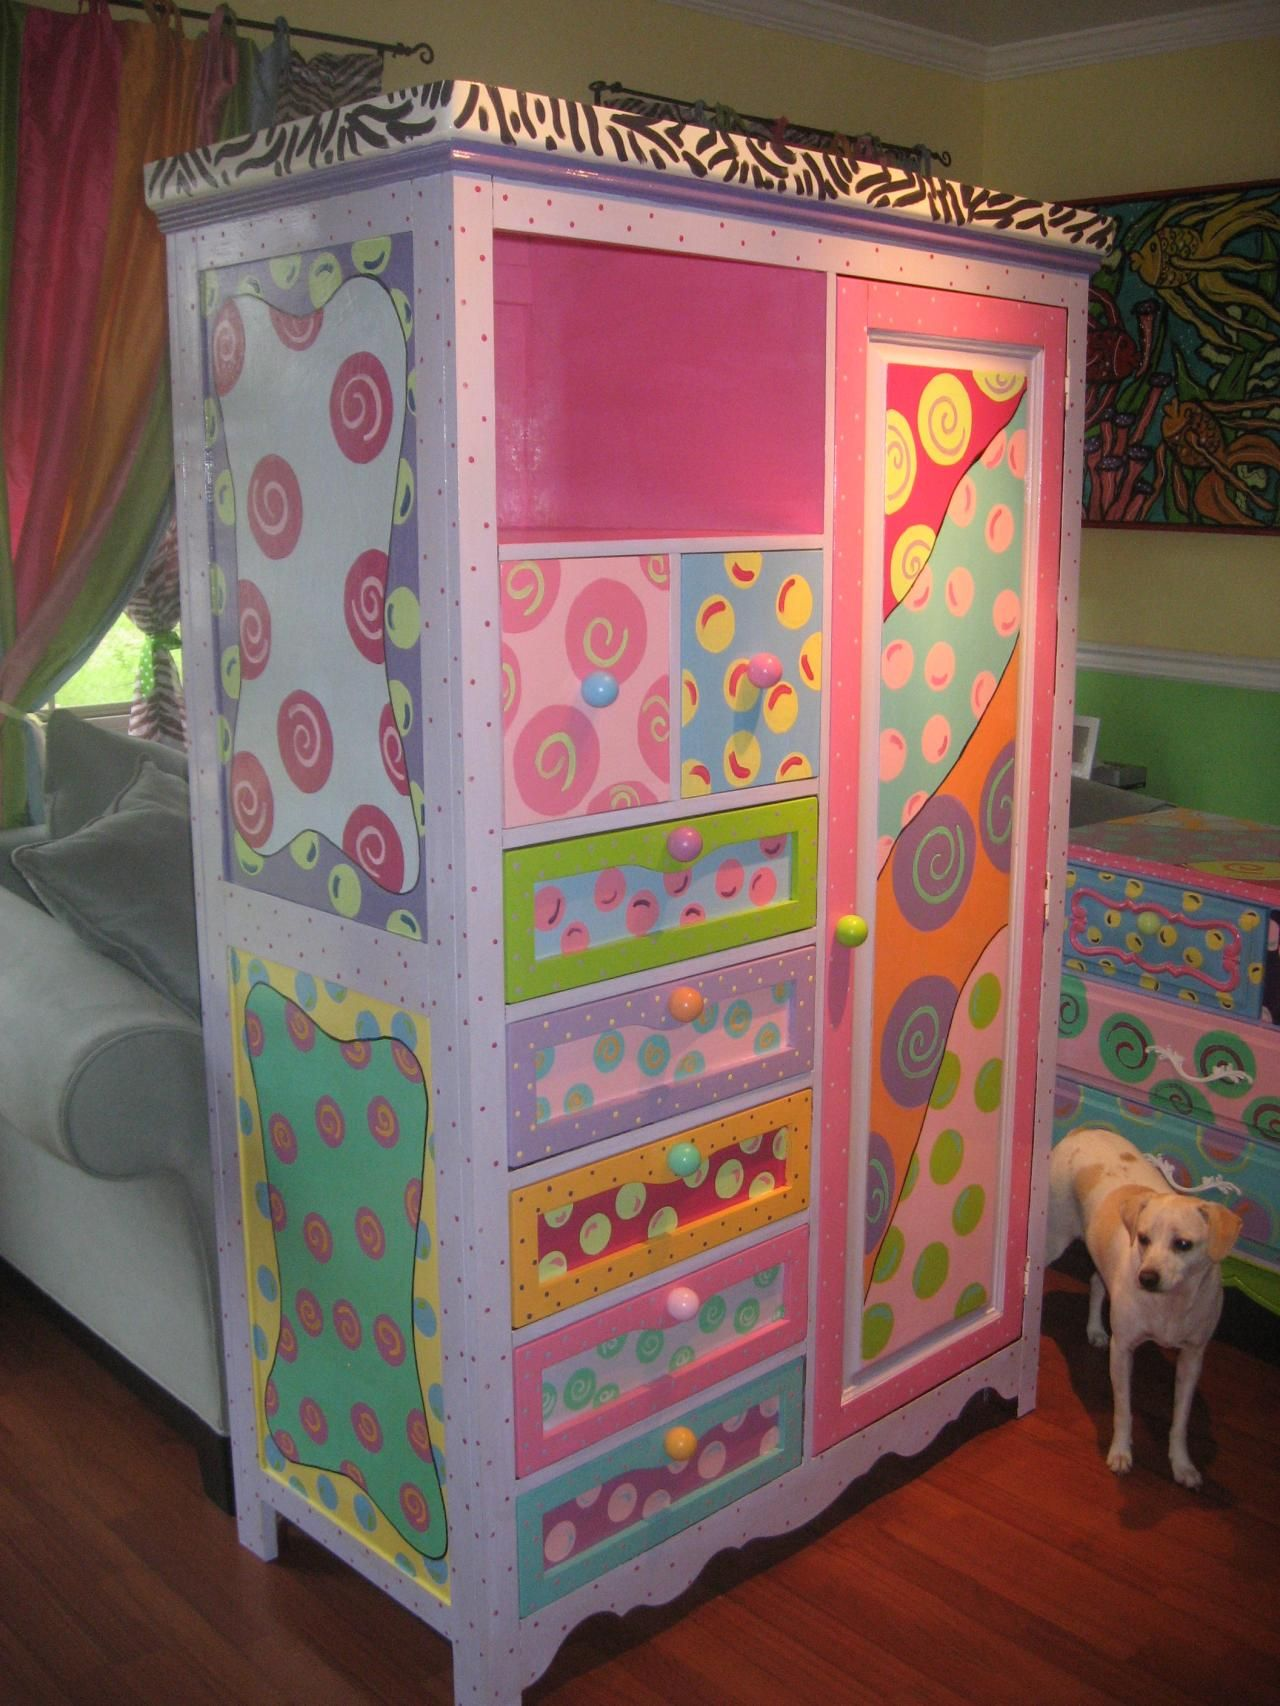 Muebles Marroquies Whimsical Painted Furniture Copyright 2010 Funky